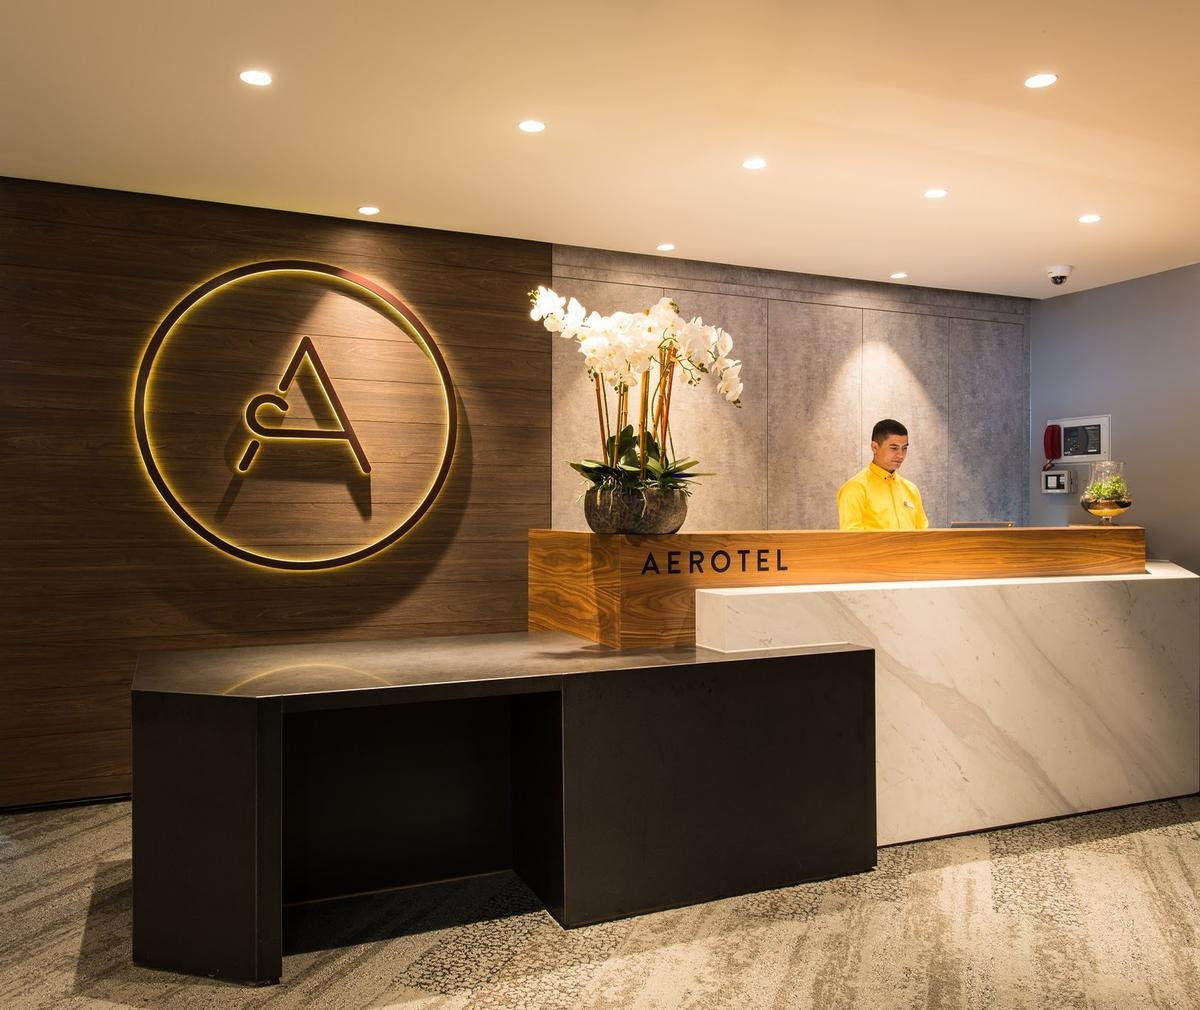 Aerotel London Heathrow is located 'steps away' from the check-in desks / Aerotel